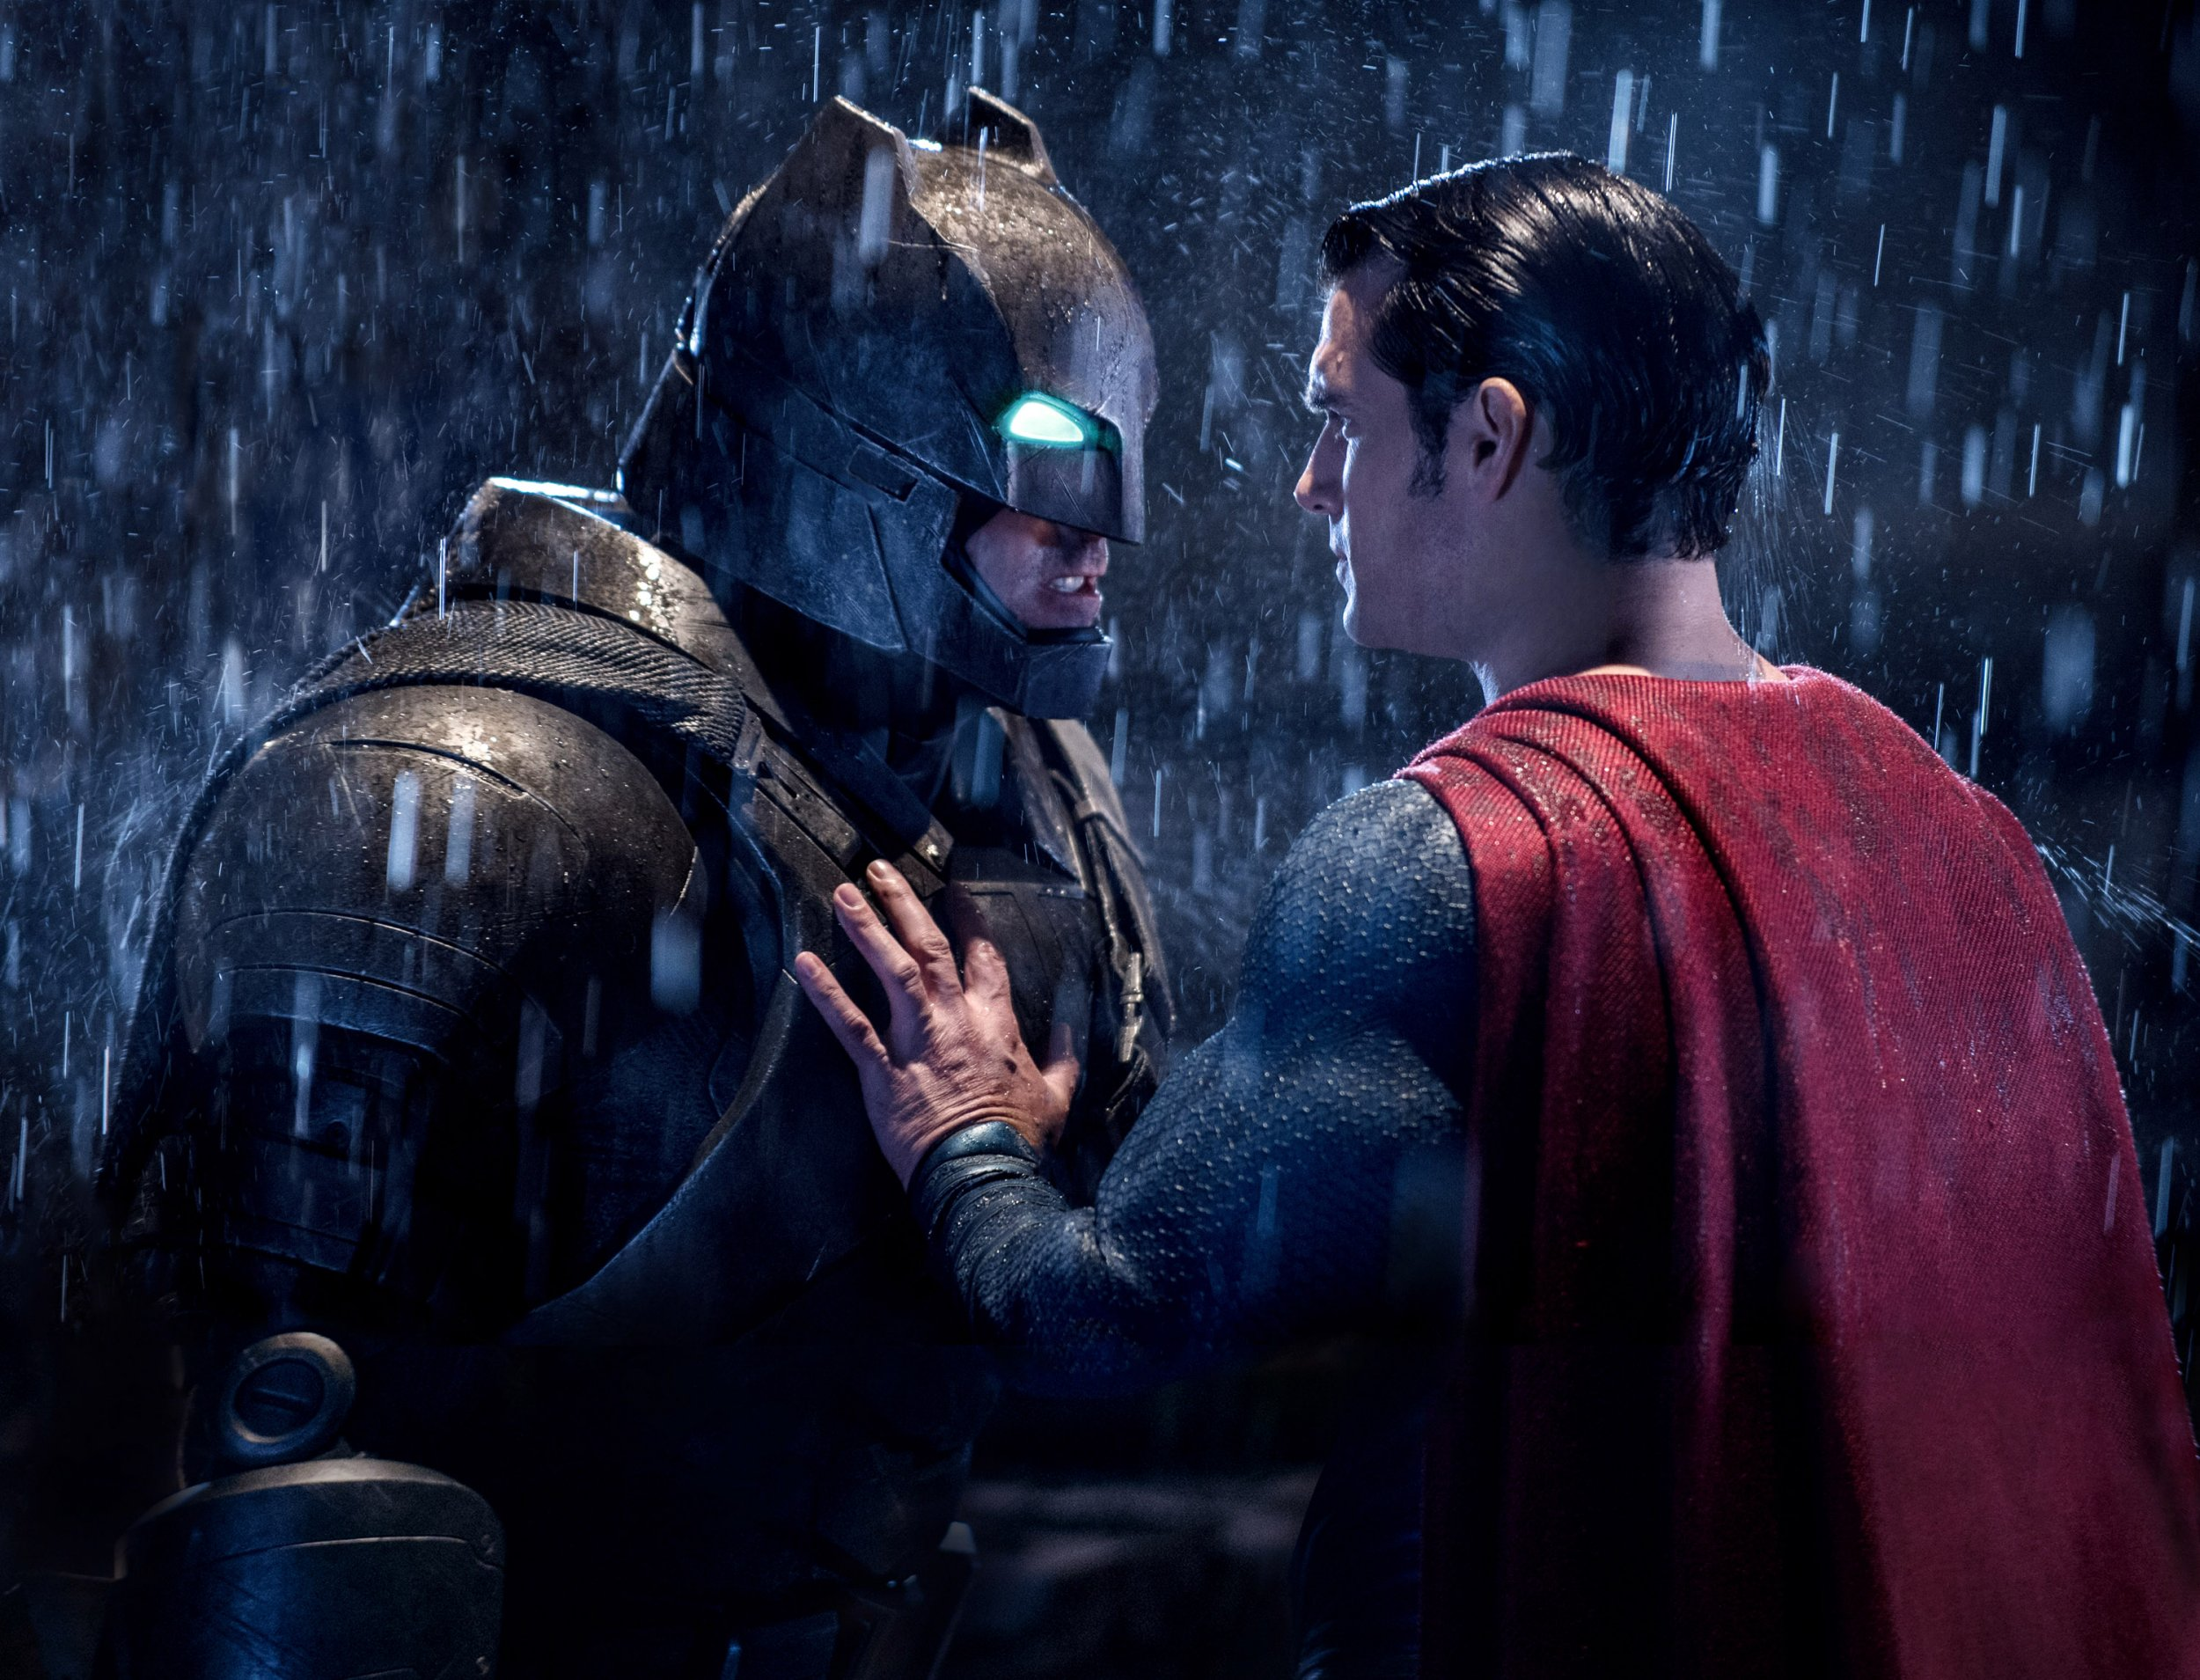 Batman v Superman: Here's why Zack Snyder killed off THAT major character